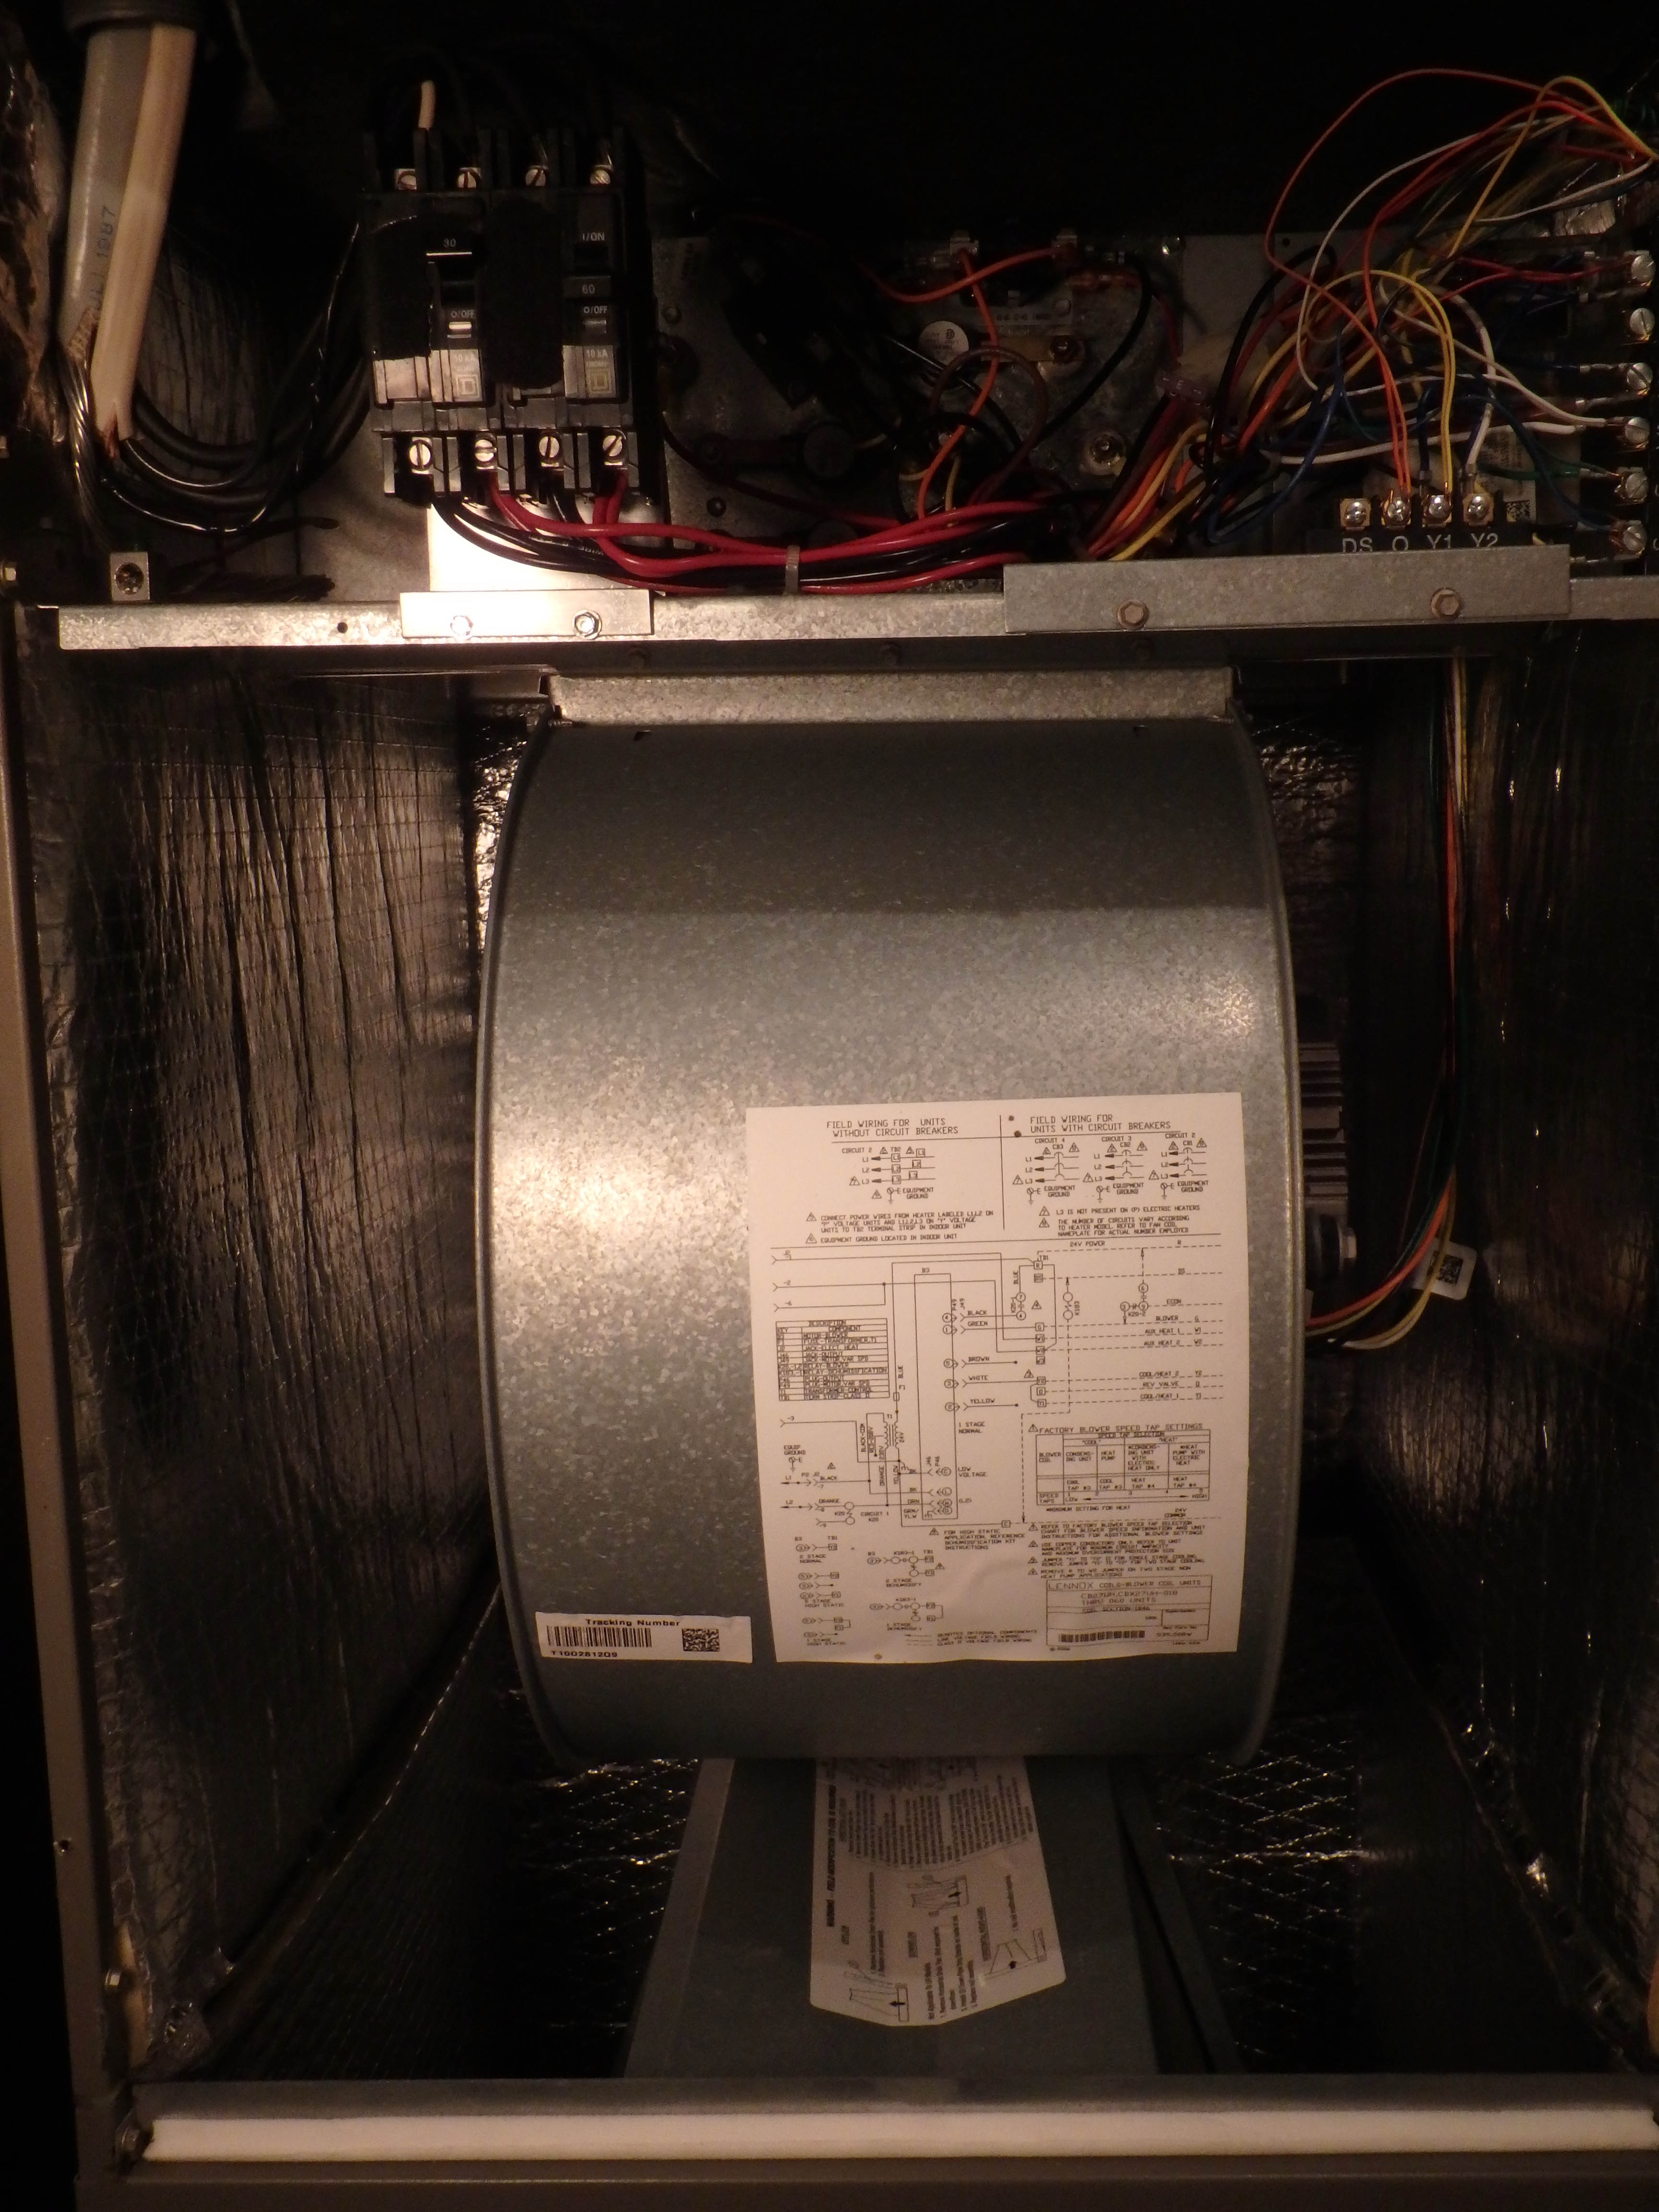 My Lennox Air Handler keeps blowing 3 amp fuses They are